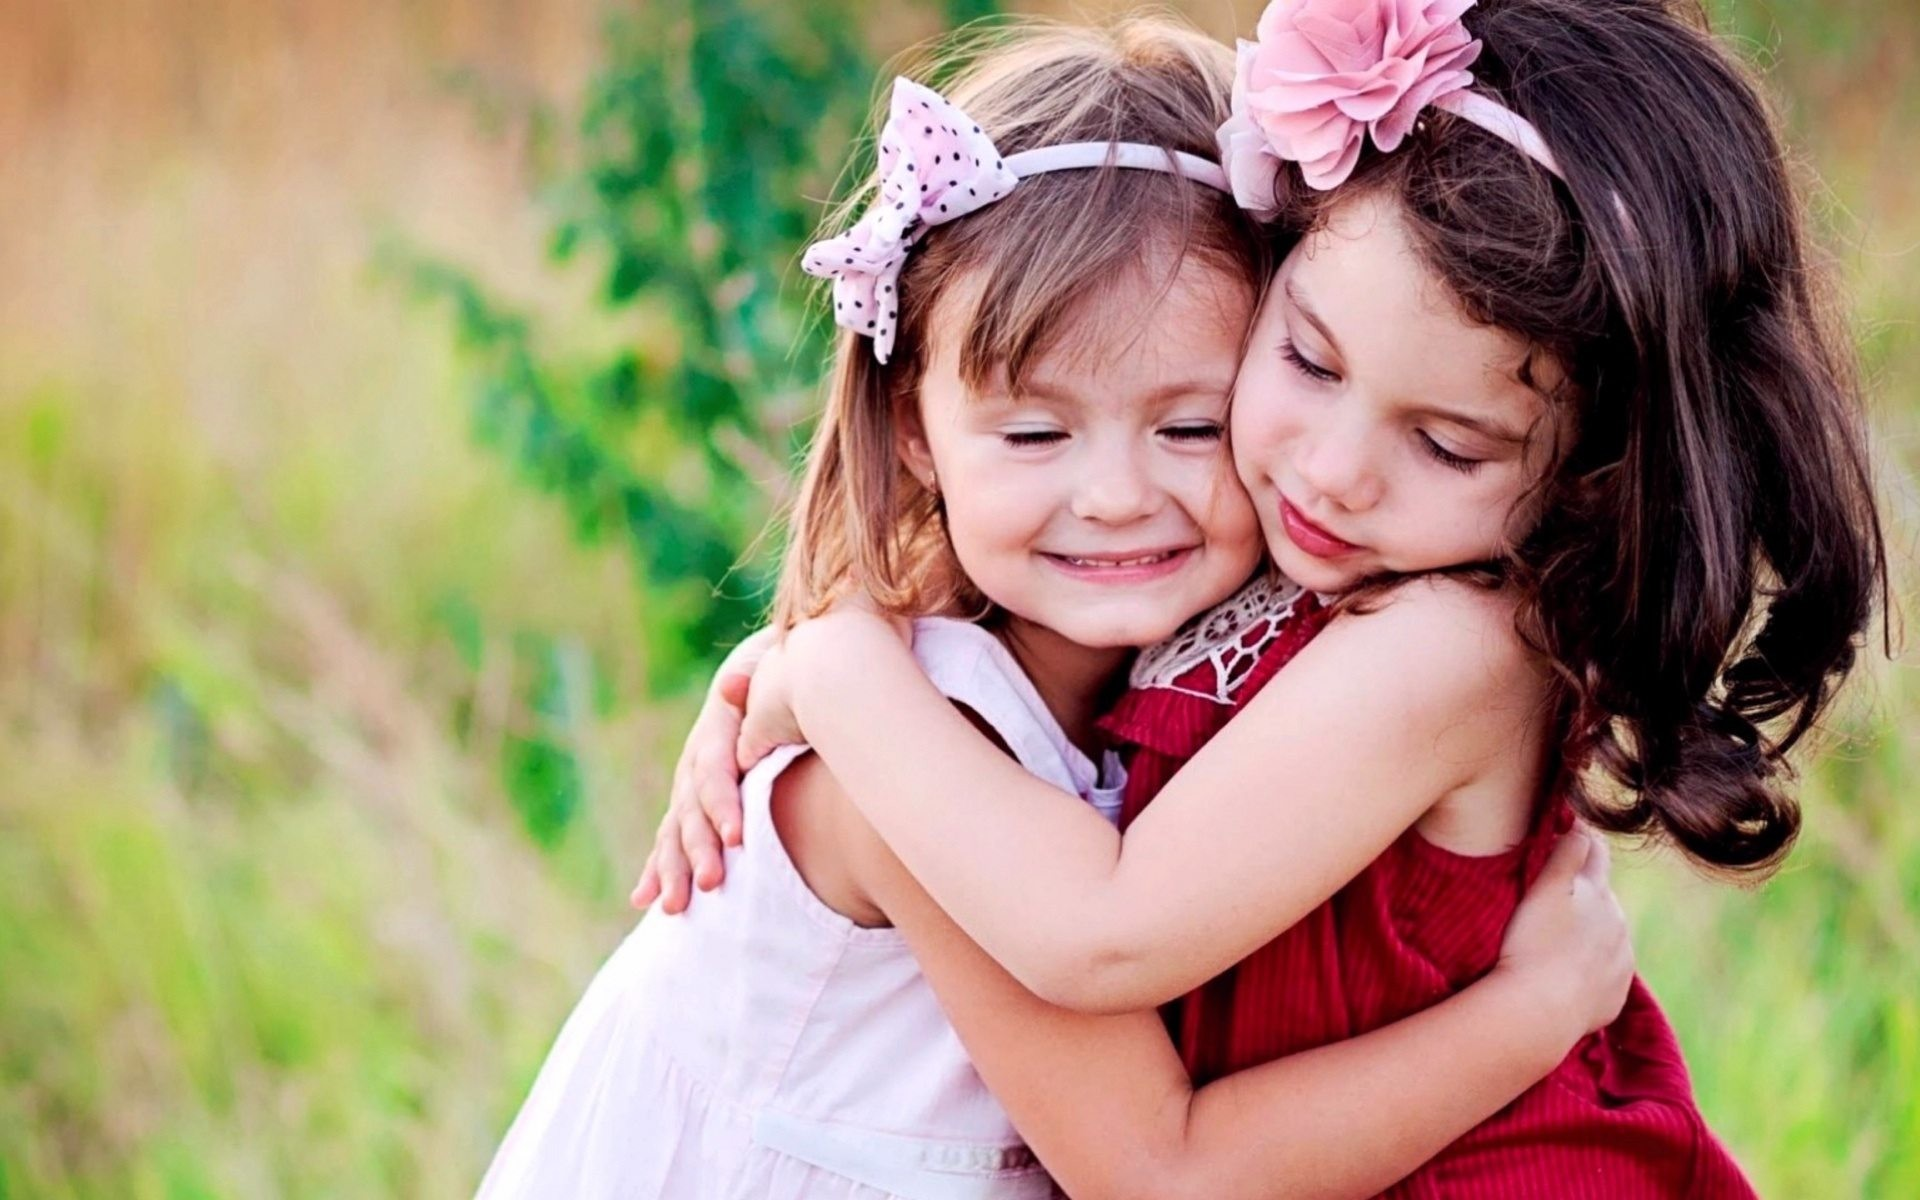 Boy And Girl Hug Wallpapers Innocent Wallpapers 74 Images